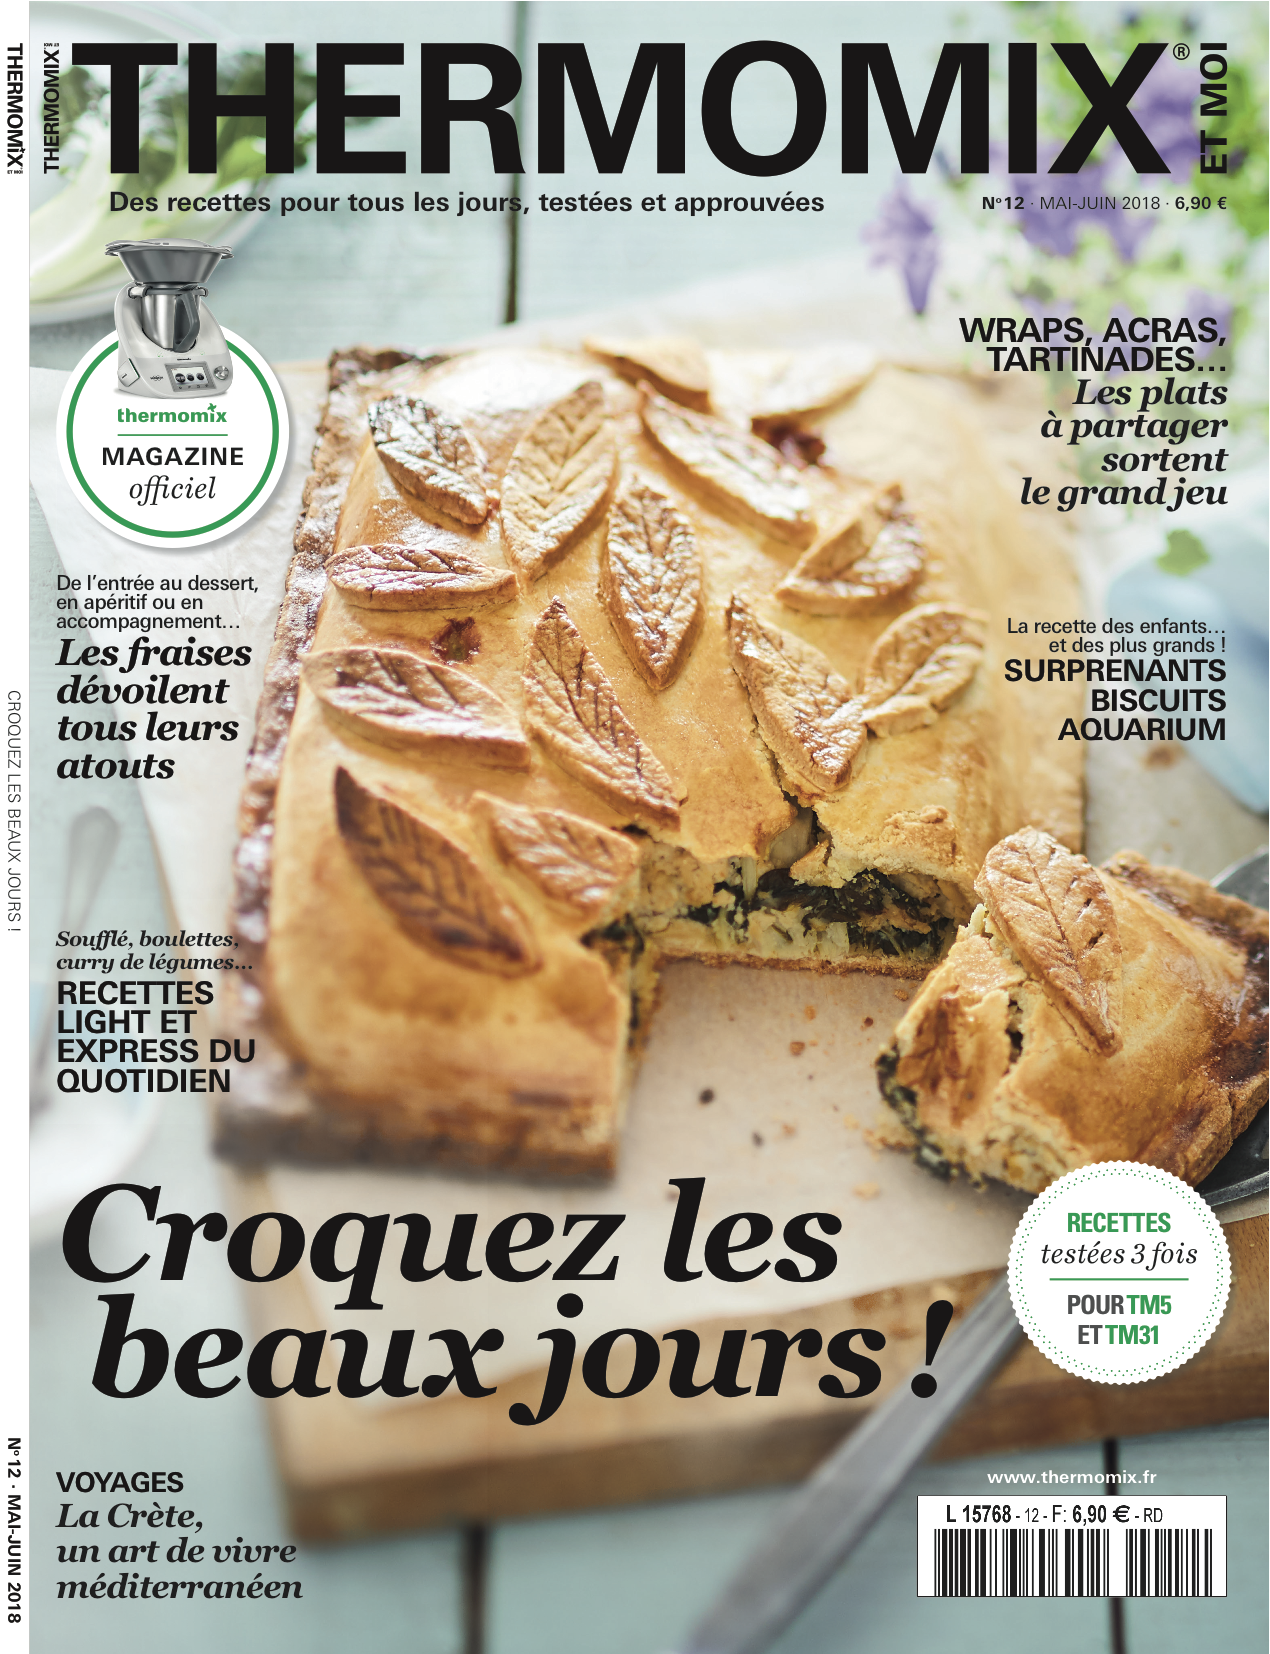 Blog Parution Thermomix